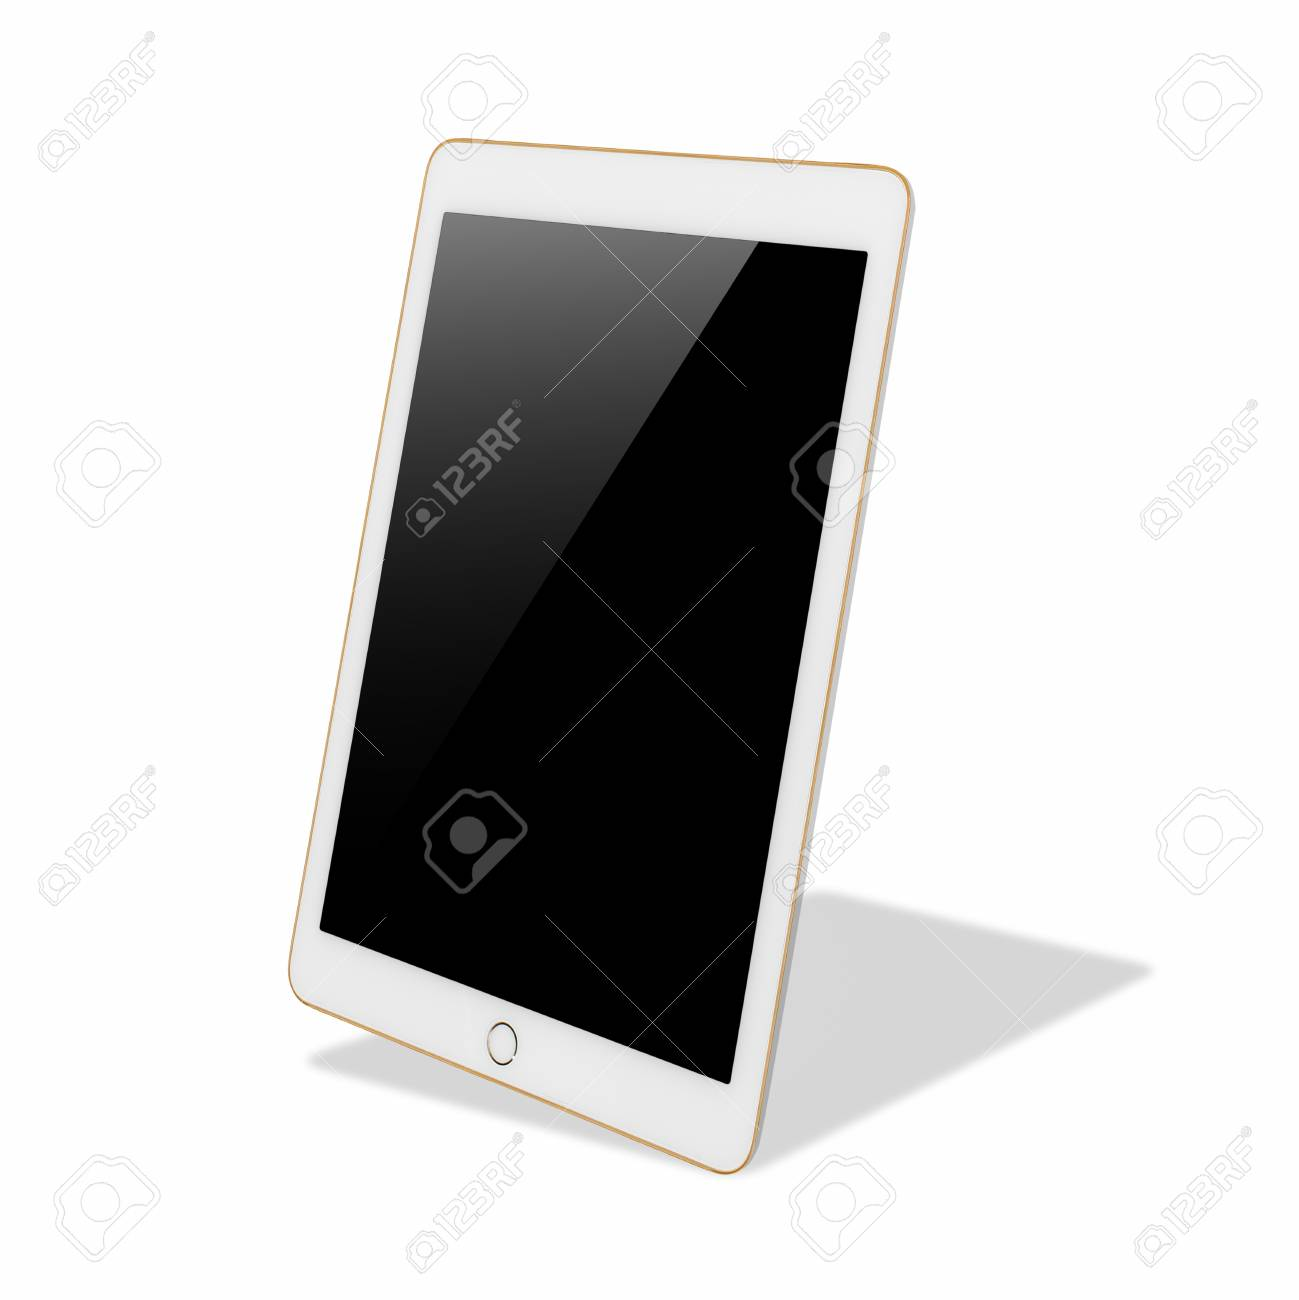 Digital Tablet Computer With Blank Black Screen, The Frame Is ...